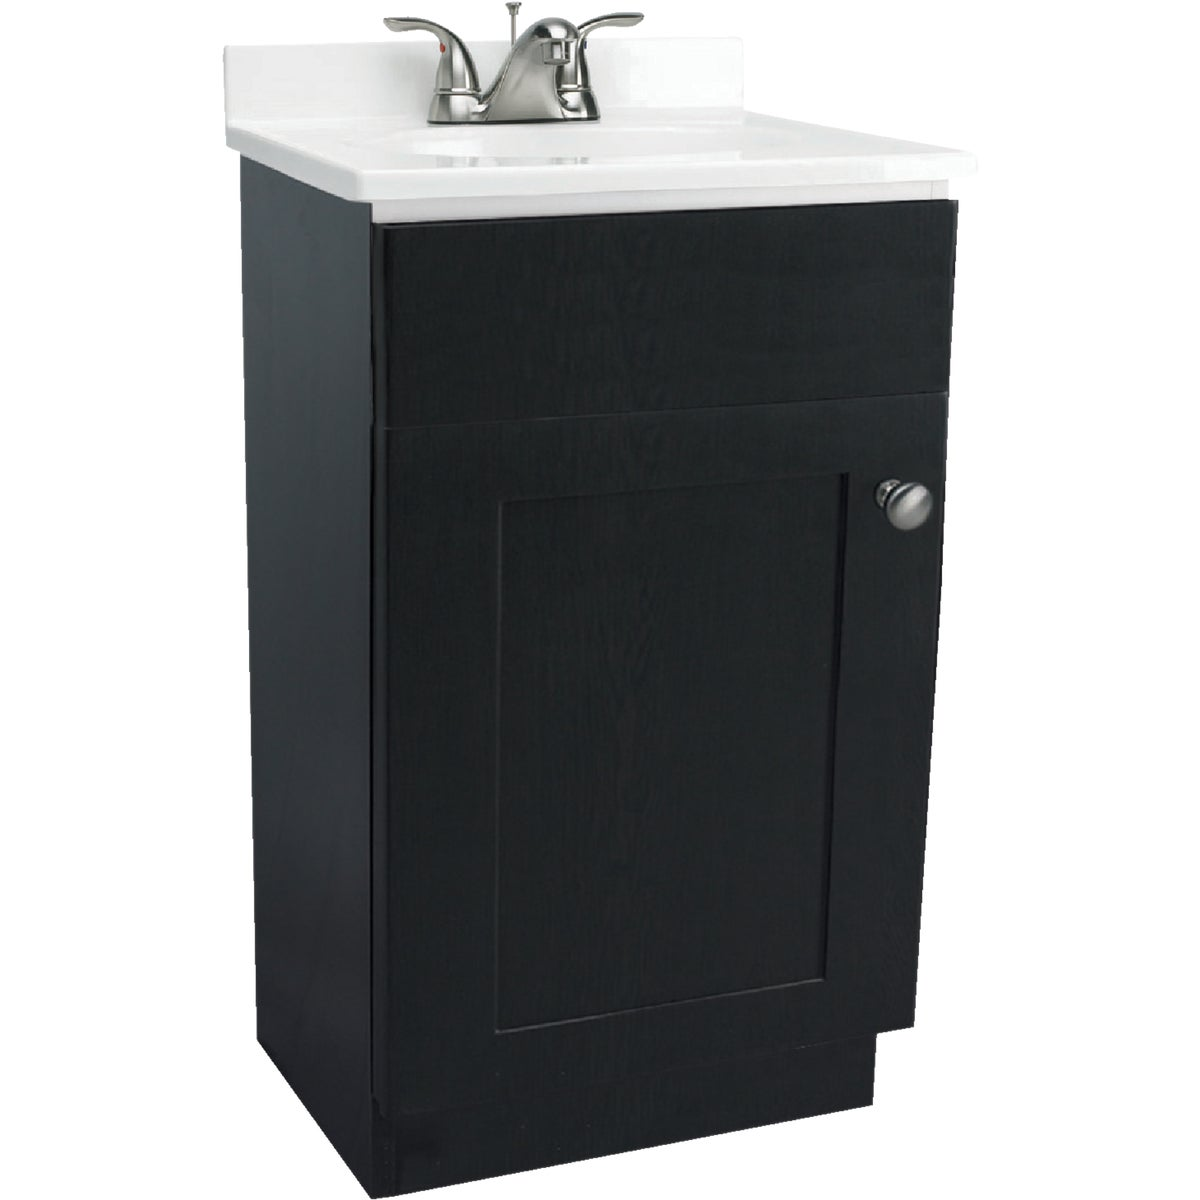 OAK COMBO VANITY - 545541 by Design House  Dhi